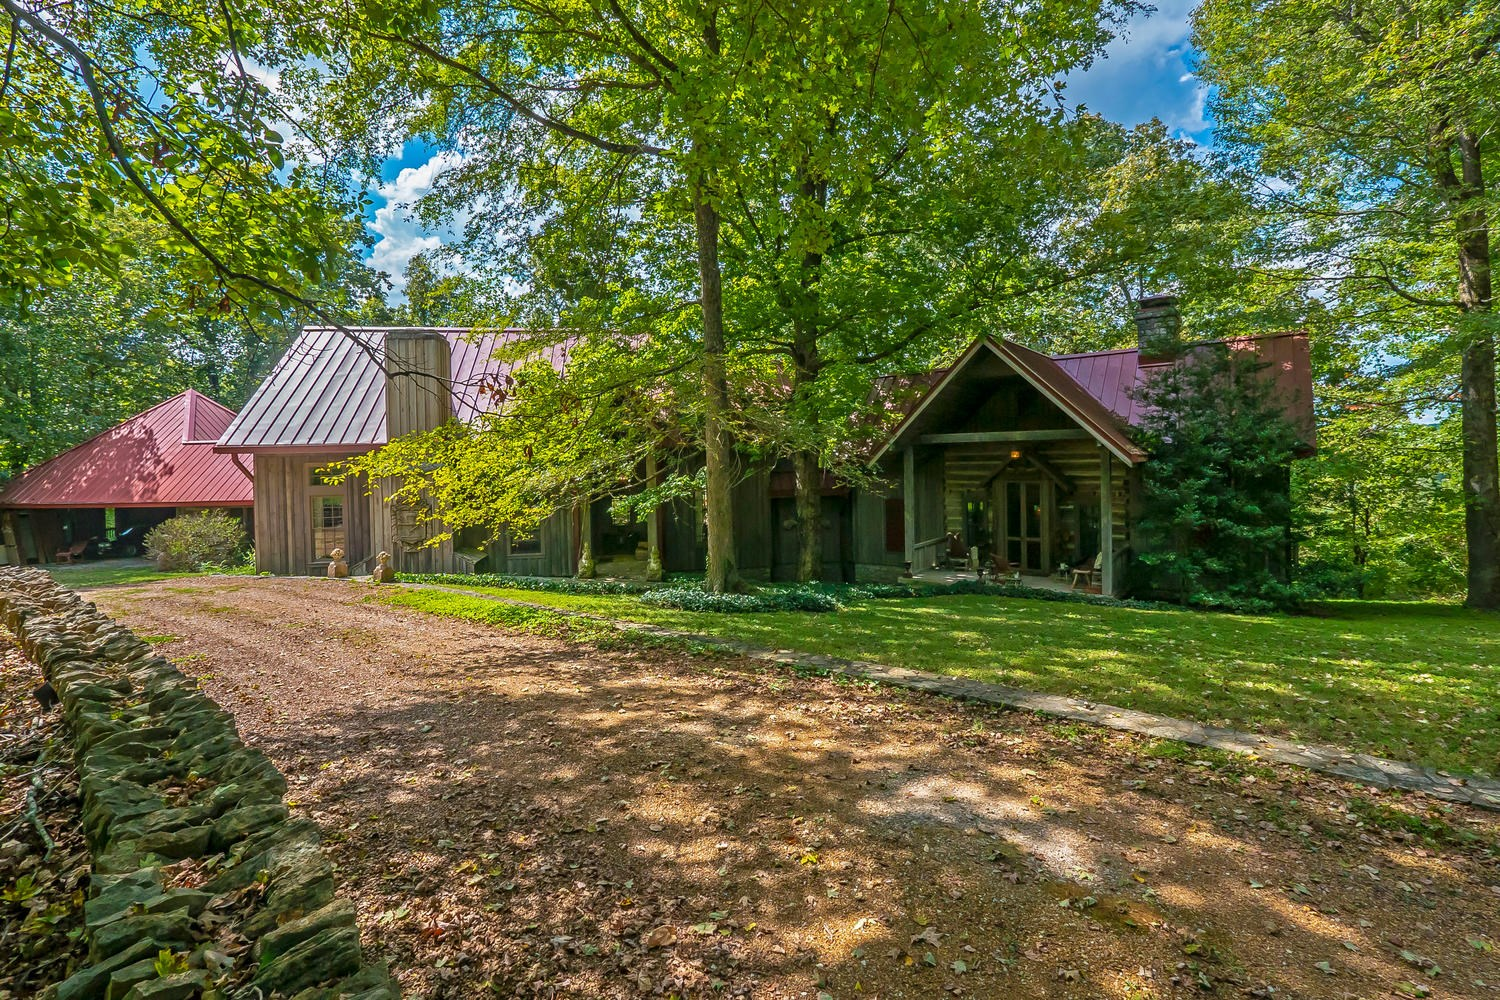 Farm For Sale in Middle Tennessee